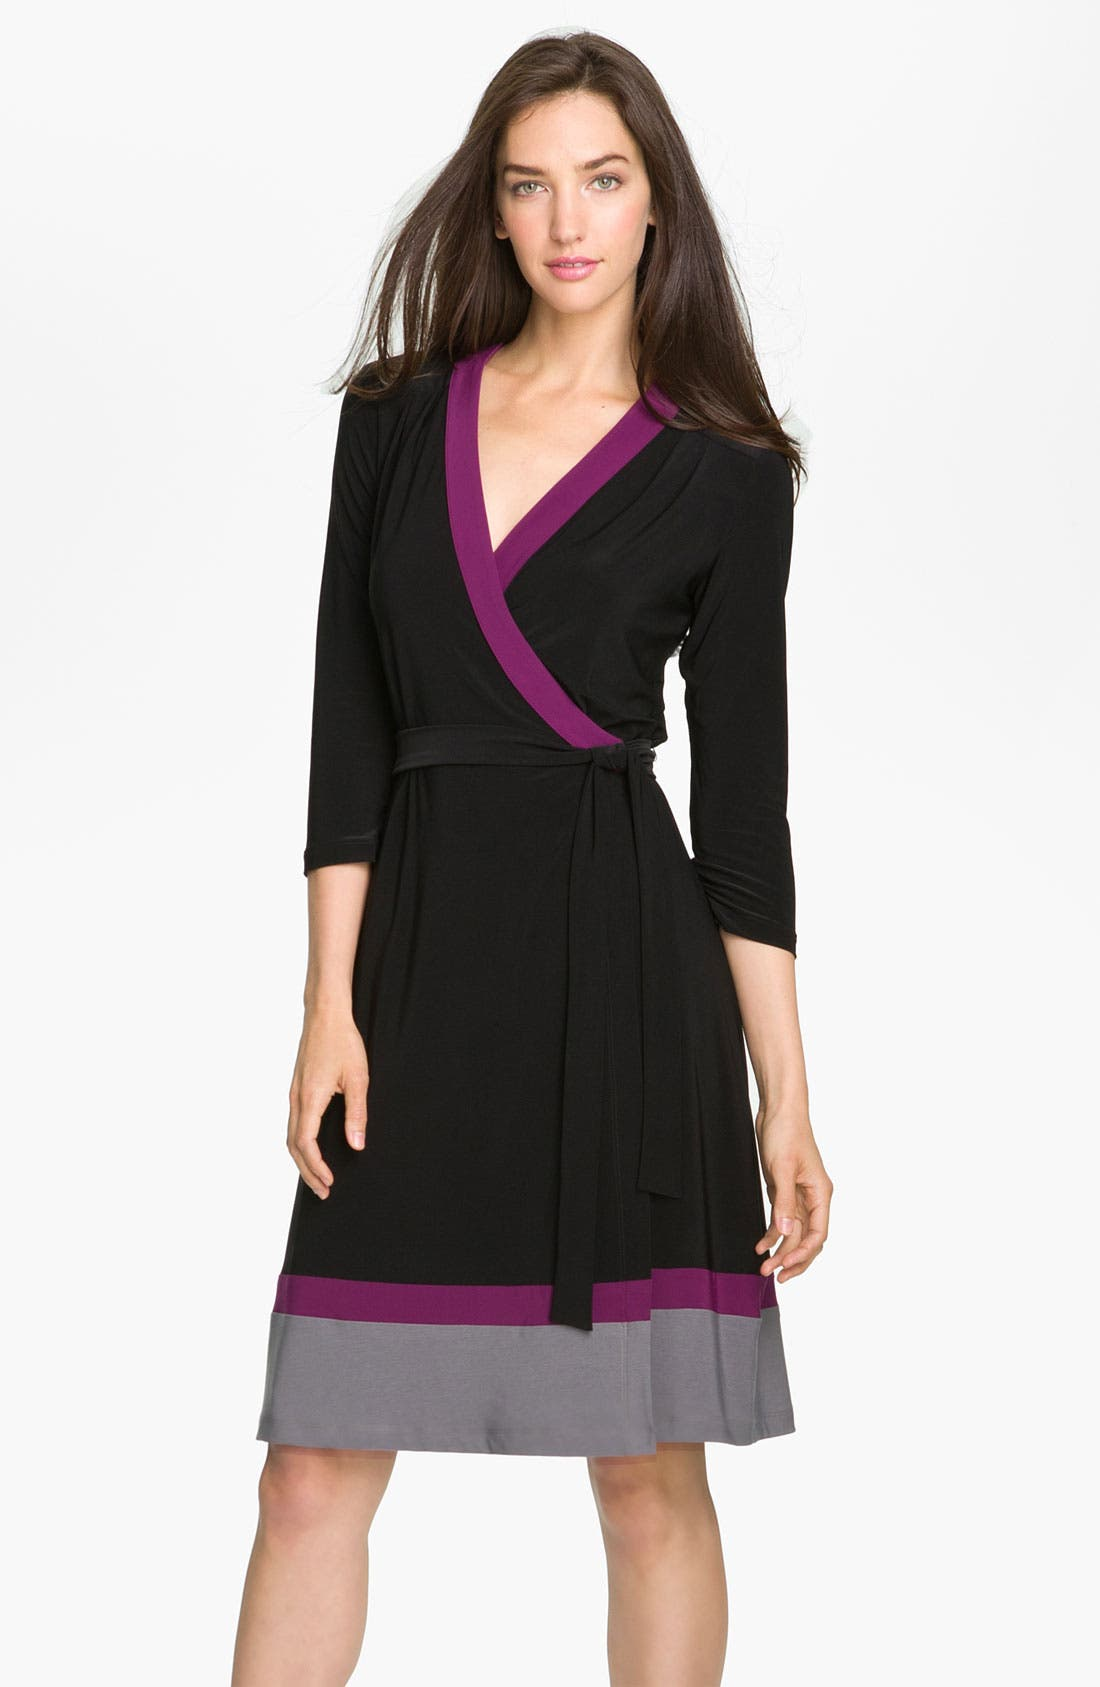 Alternate Image 1 Selected - Alex & Ava Colorblock Jersey Wrap Dress (Petite)